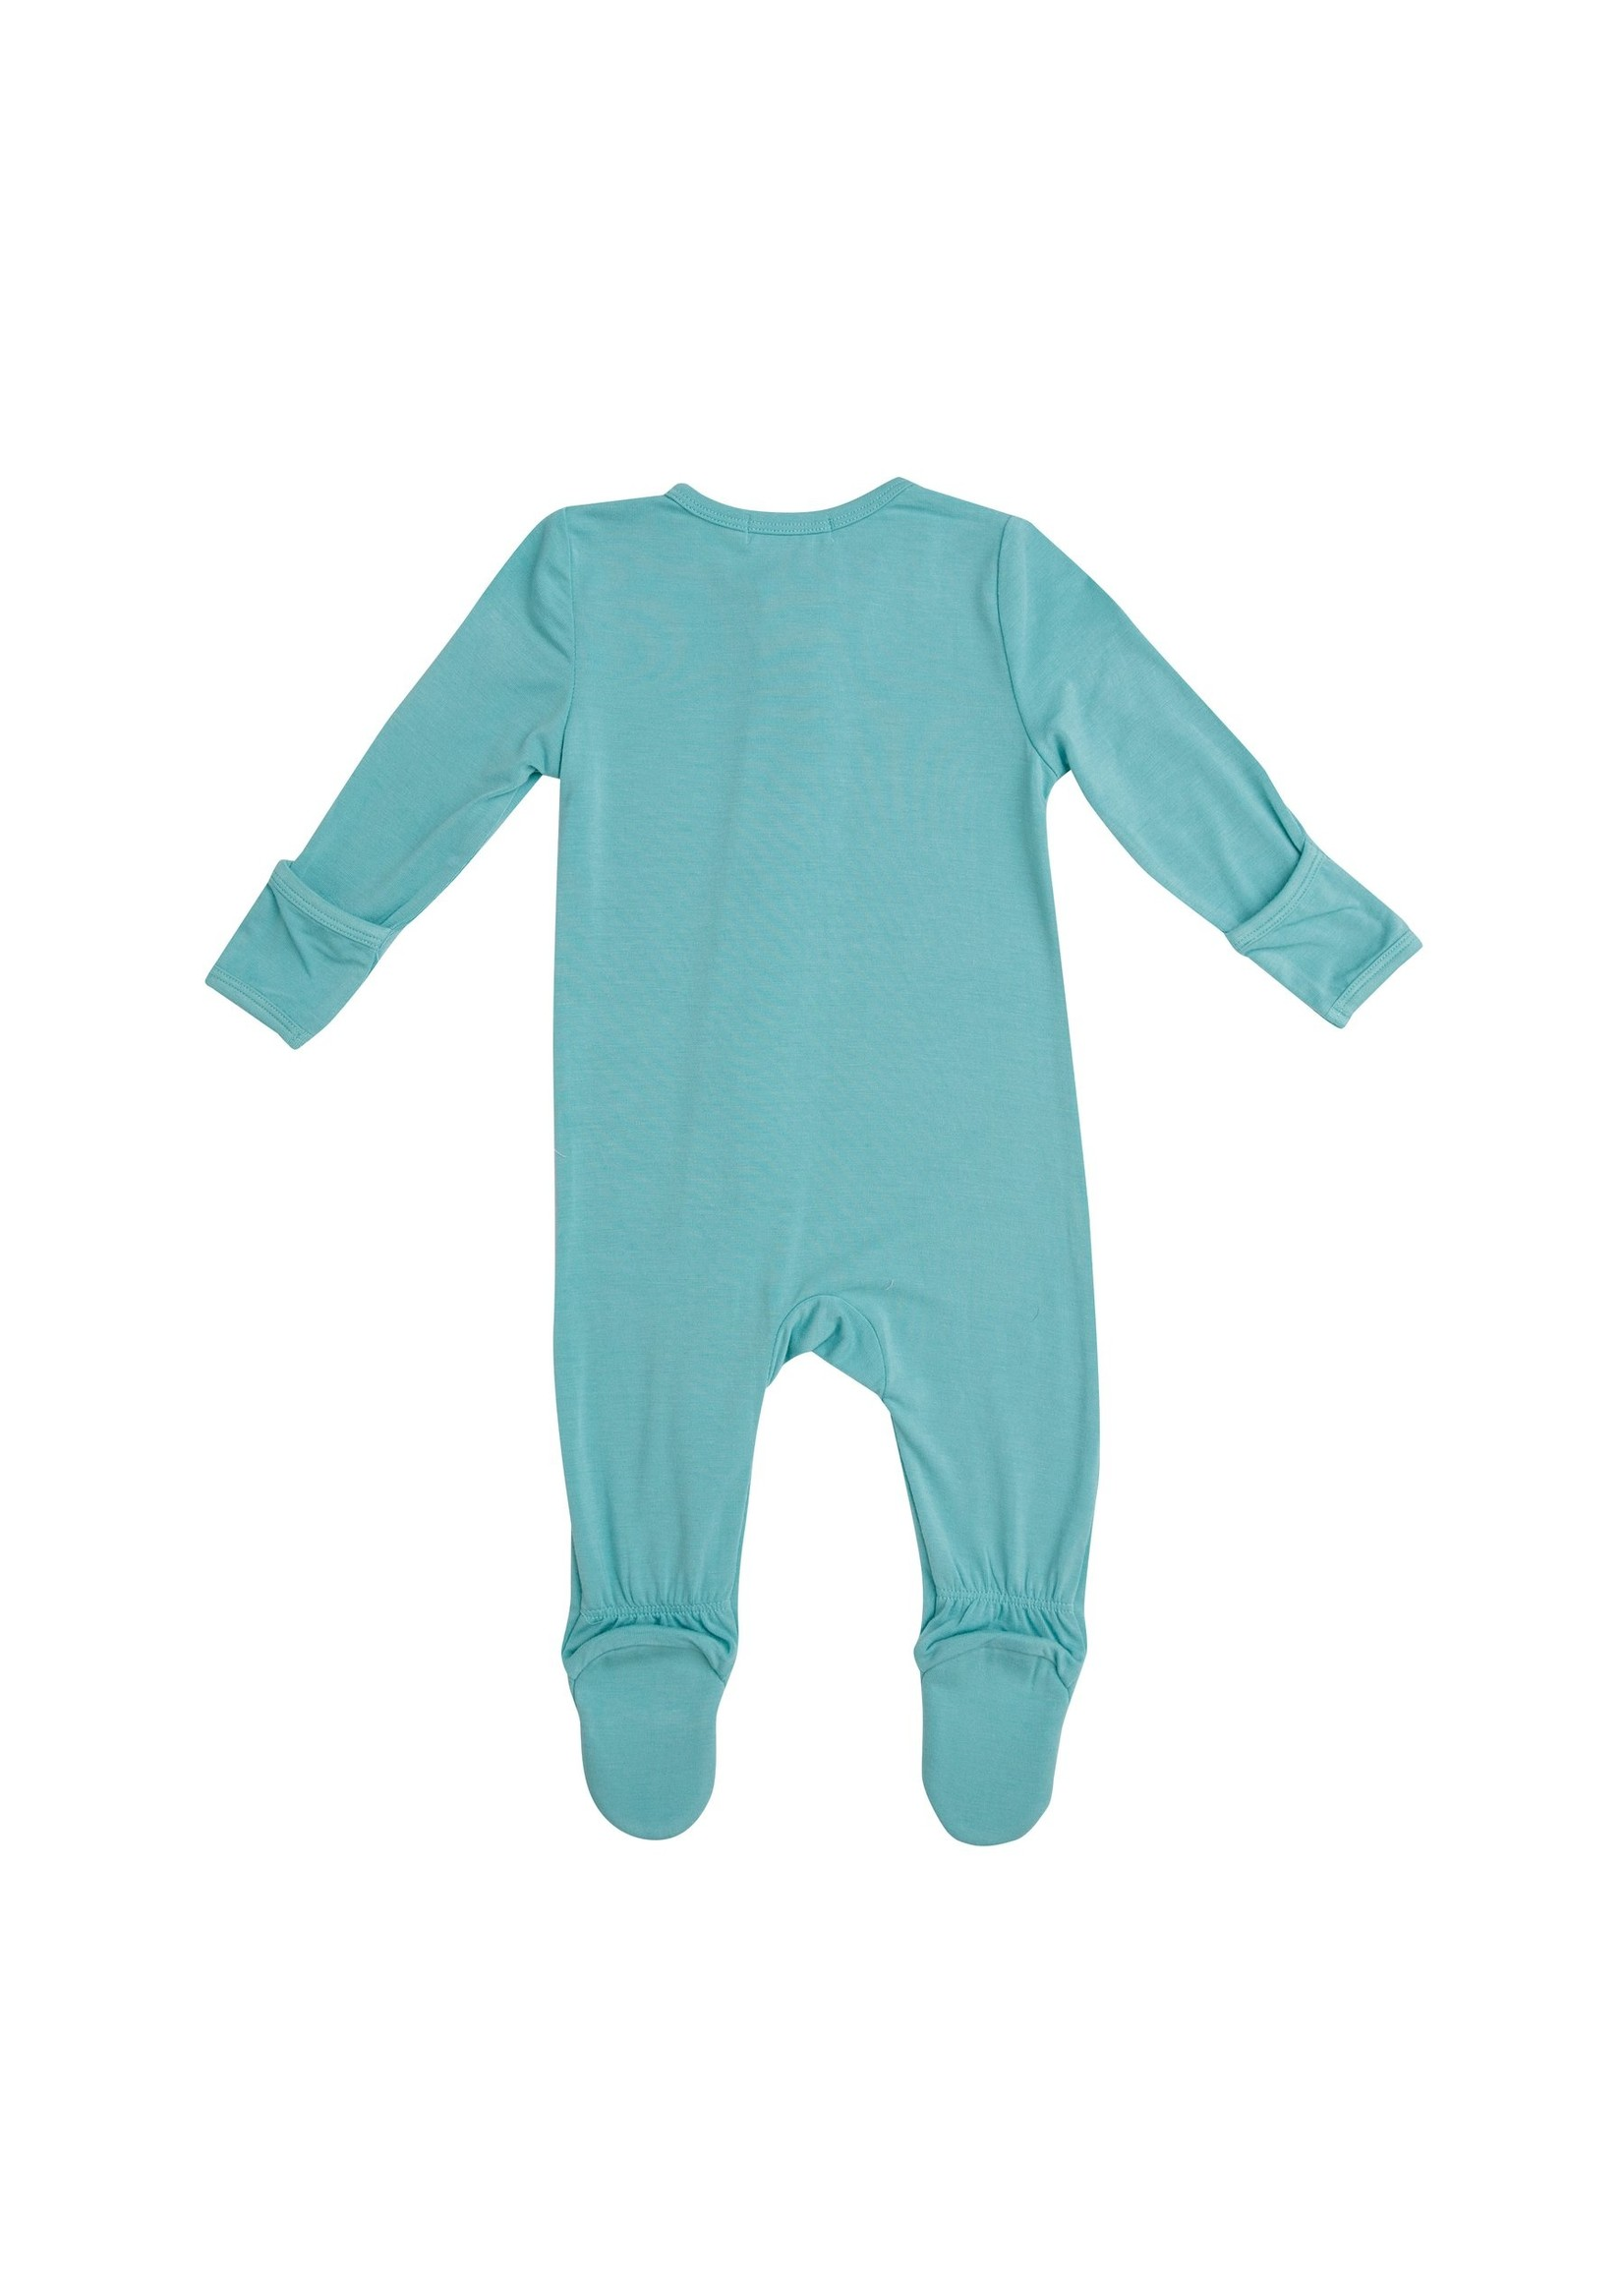 Angel Dear Modern Basics Zipper Footie Jade